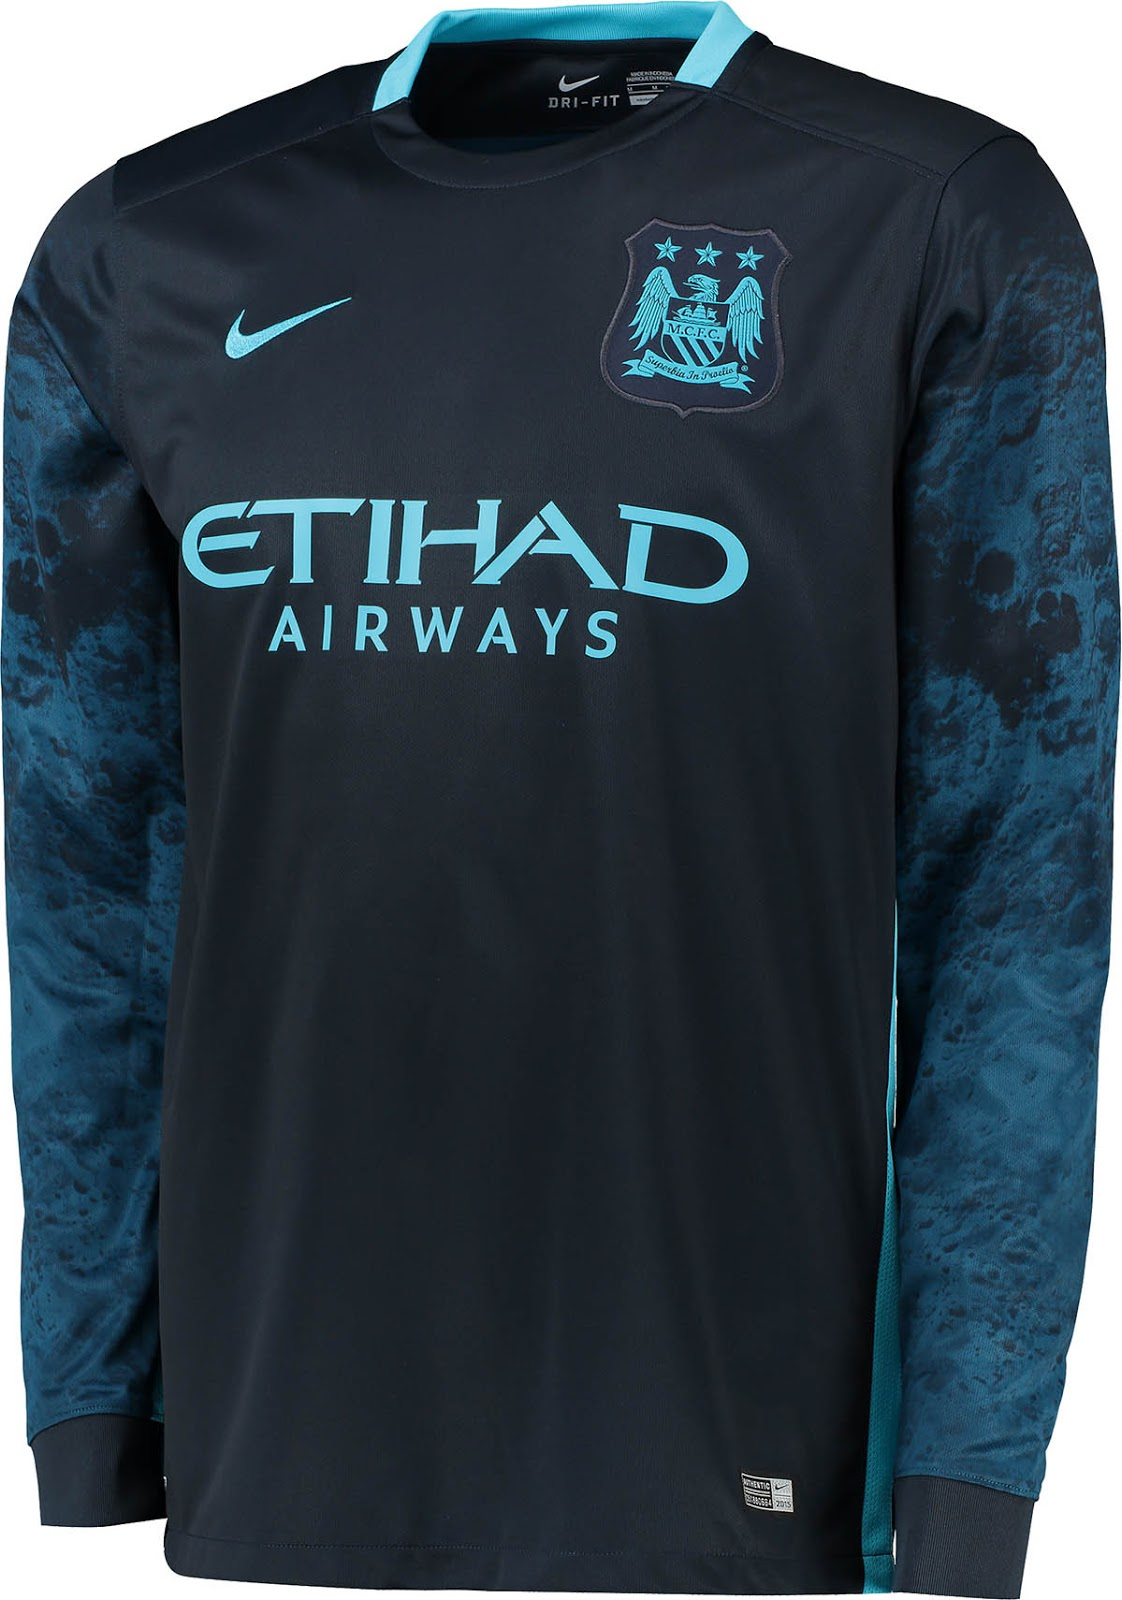 Manchester City 15-16 Away Kit Released - Footy Headlines